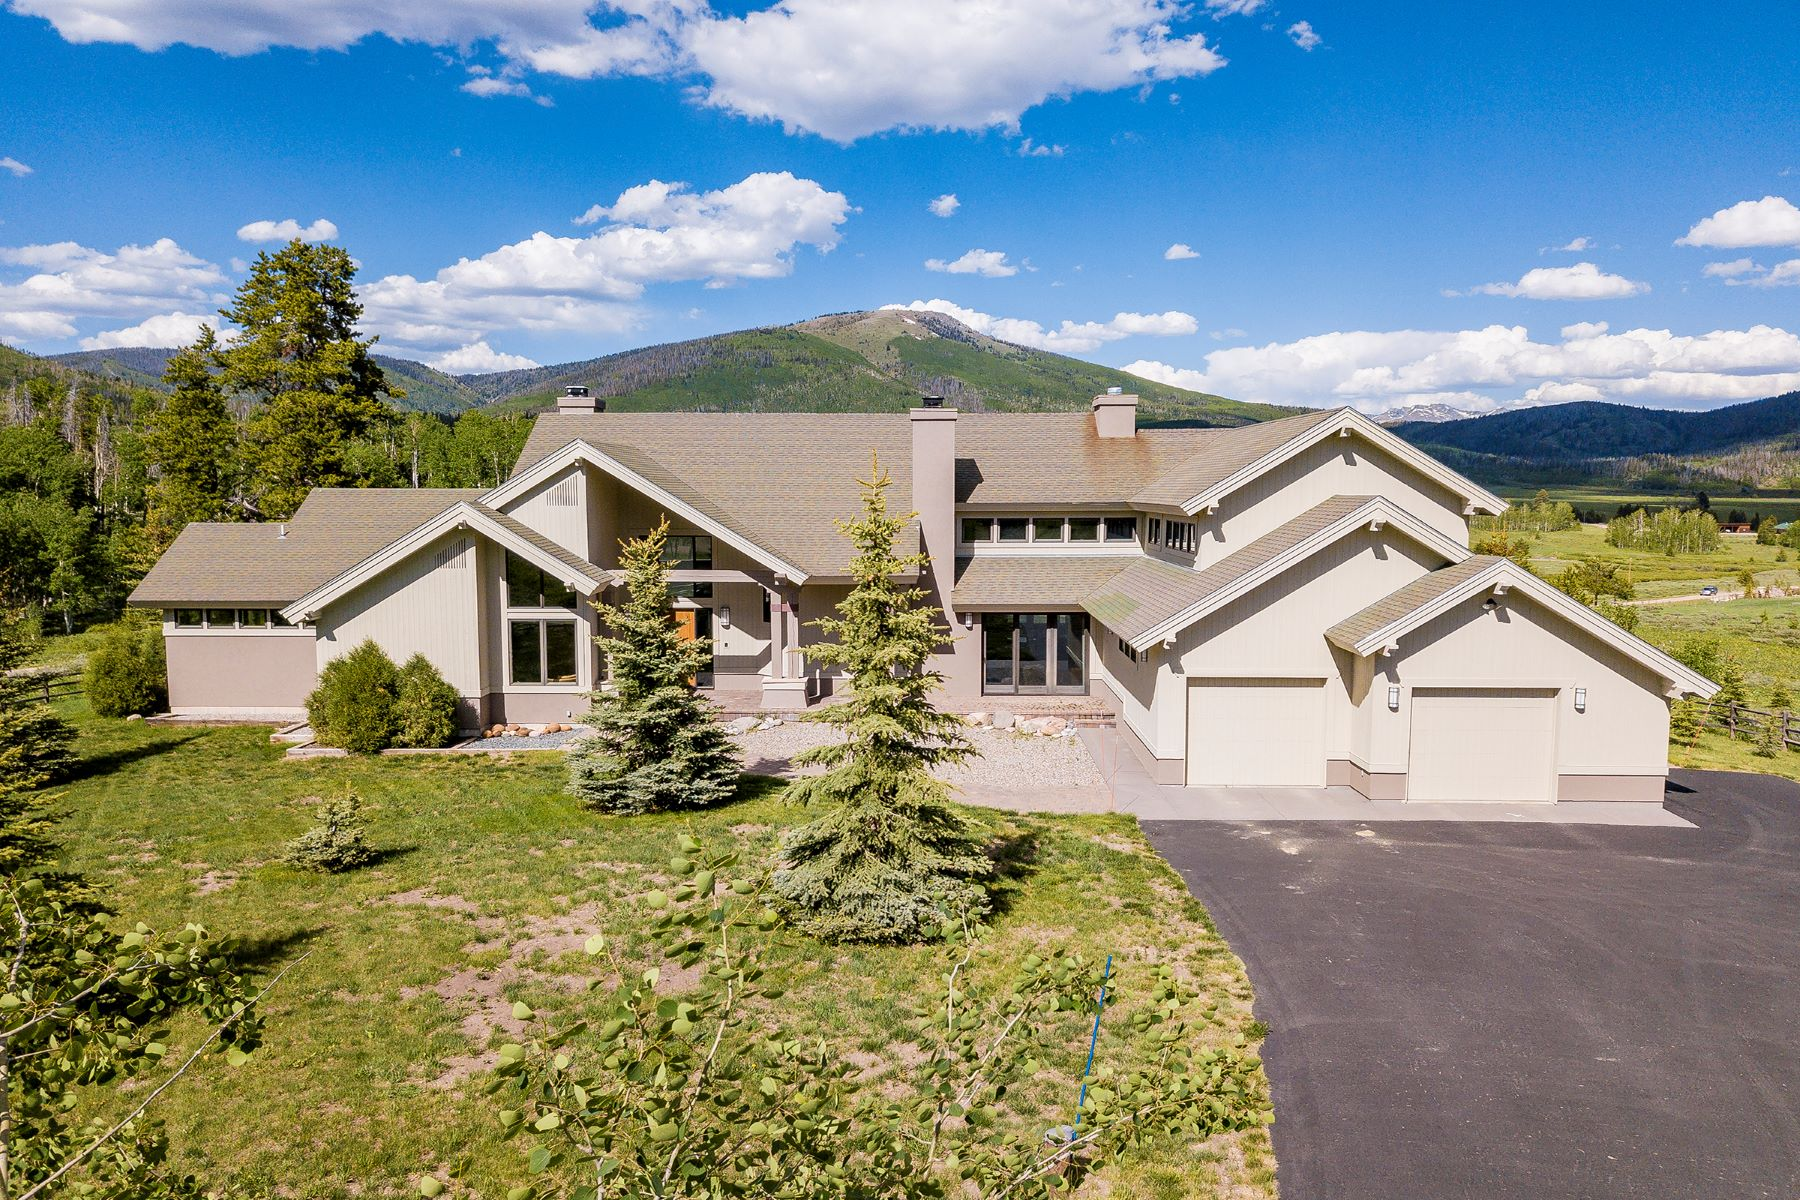 Single Family Home for Active at Pearl Lake Retreat 27350 Kelsie Court Clark, Colorado 80428 United States